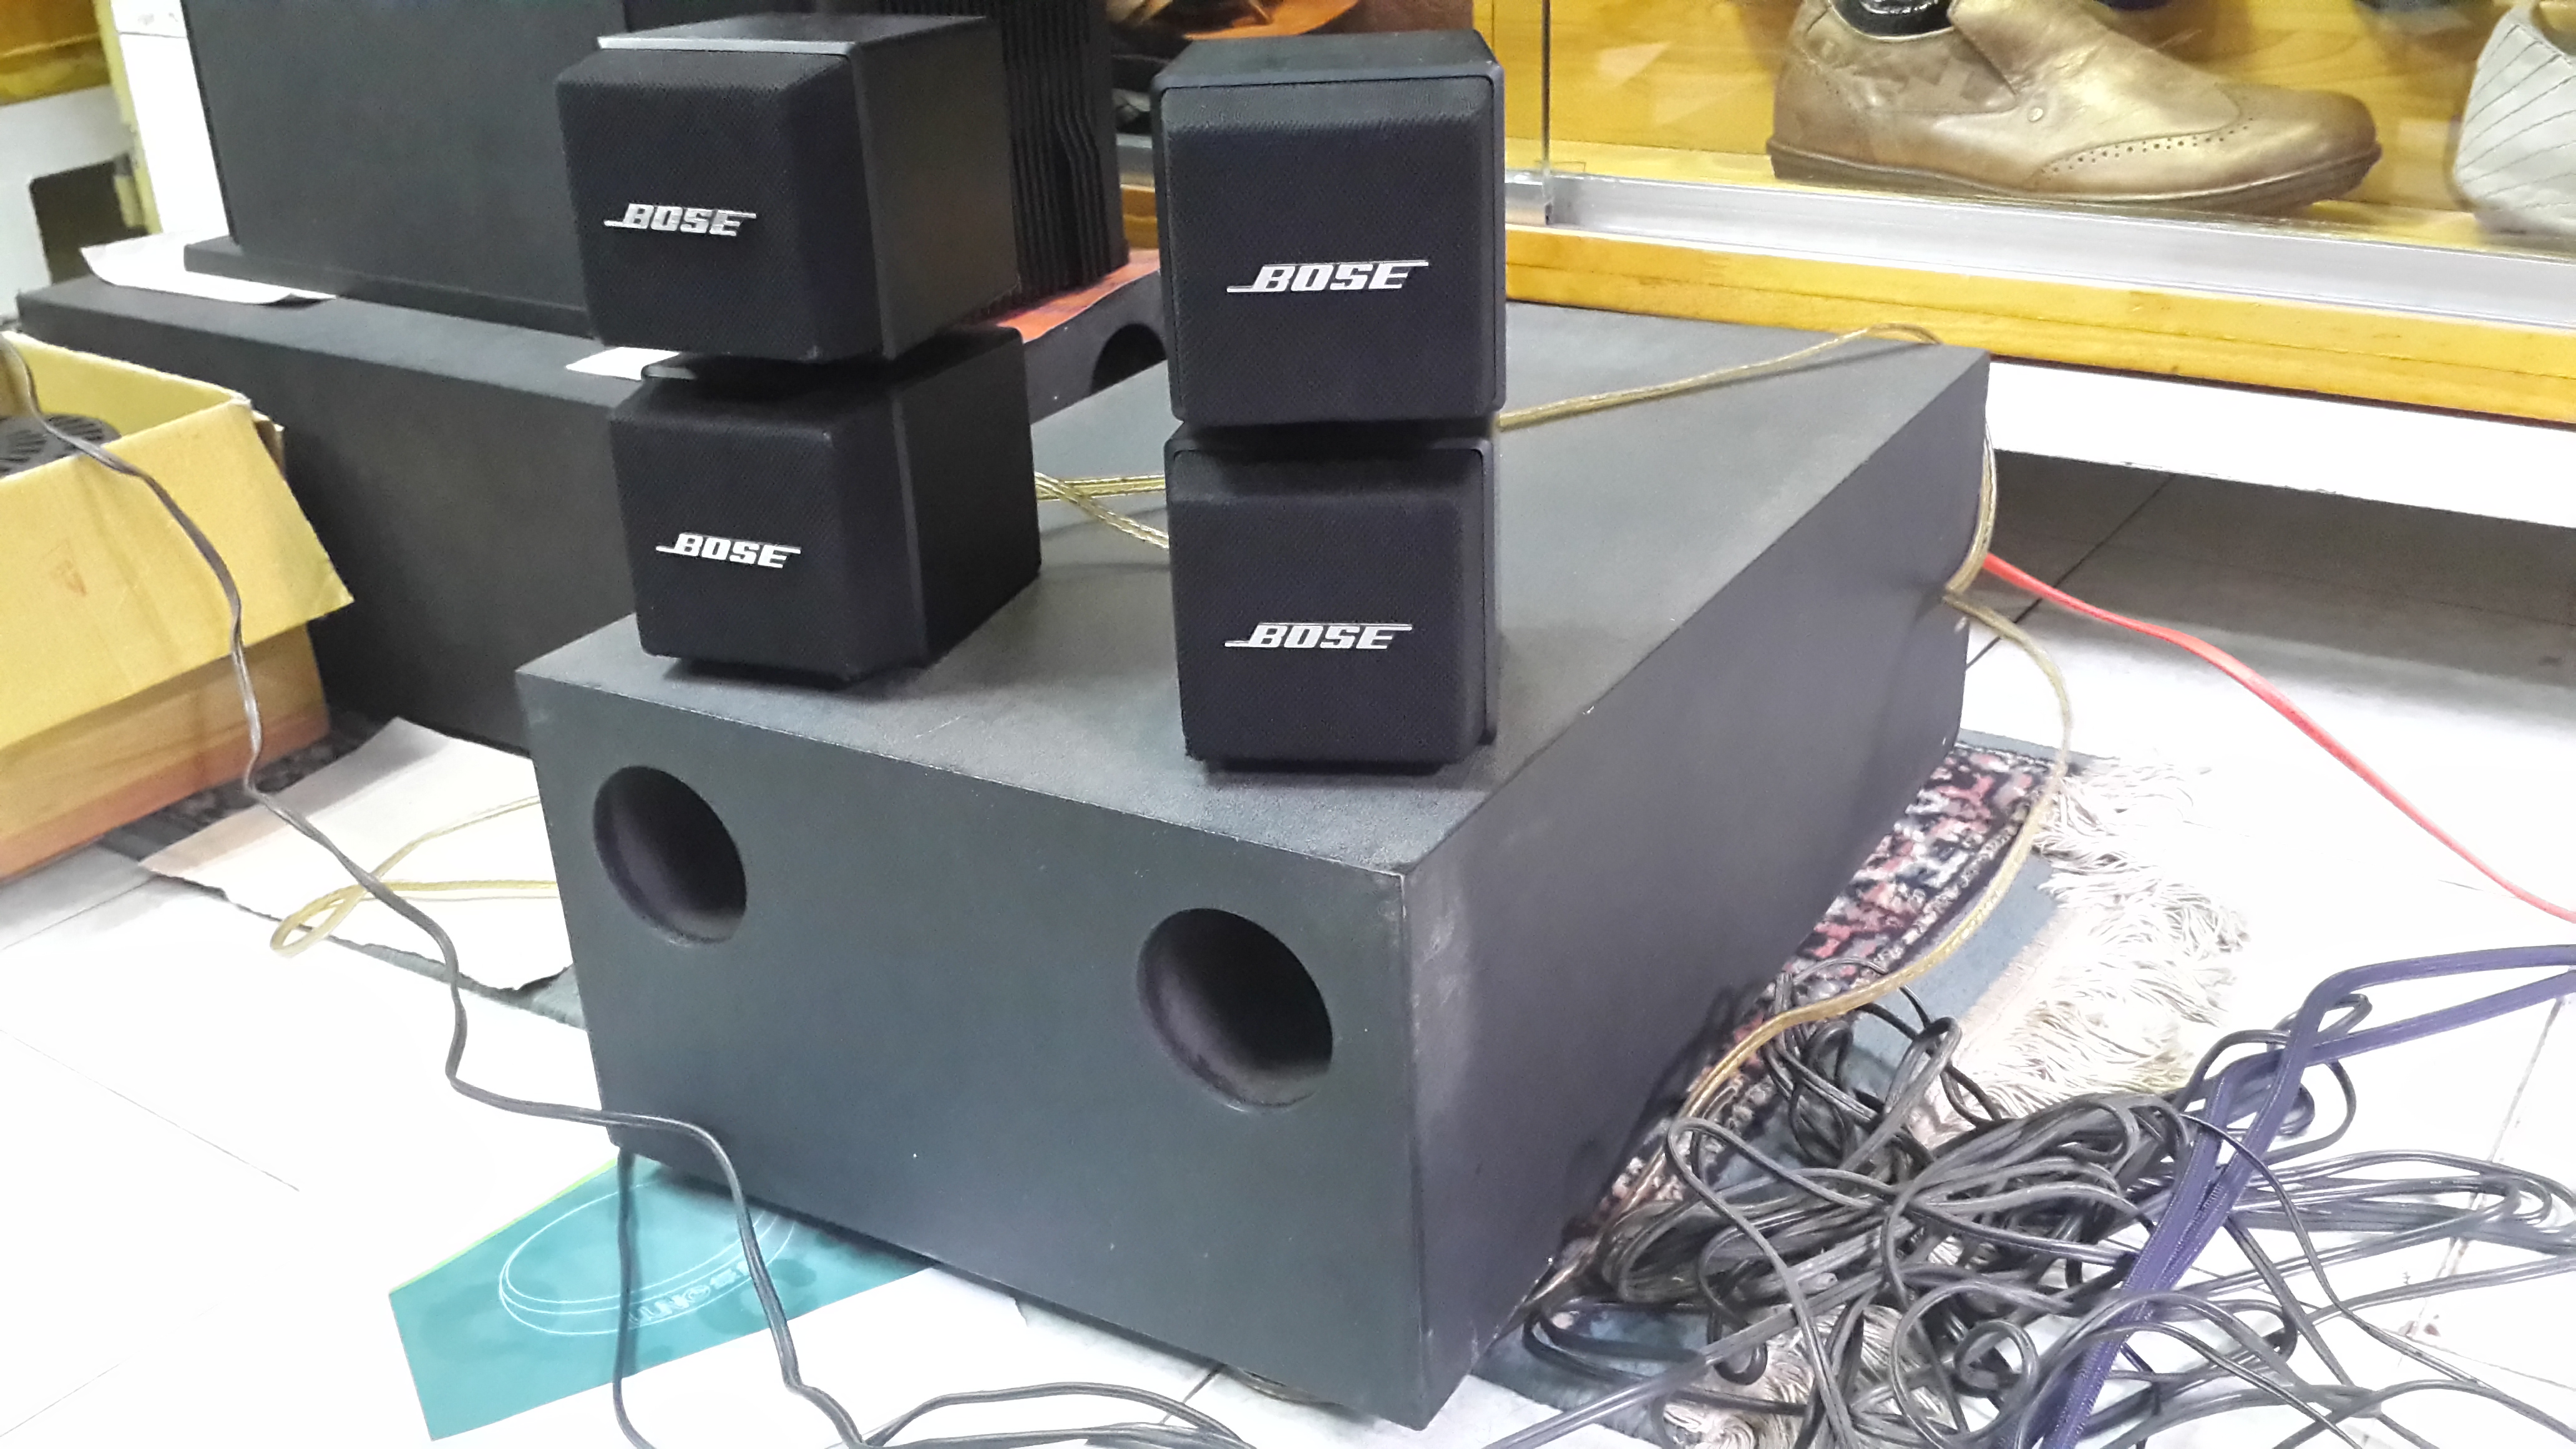 19 Bose Life style Acoustimass M5,M6,M7,M9,M10,M15,M20,M25, M30 và Bose cube array, red line, jewel